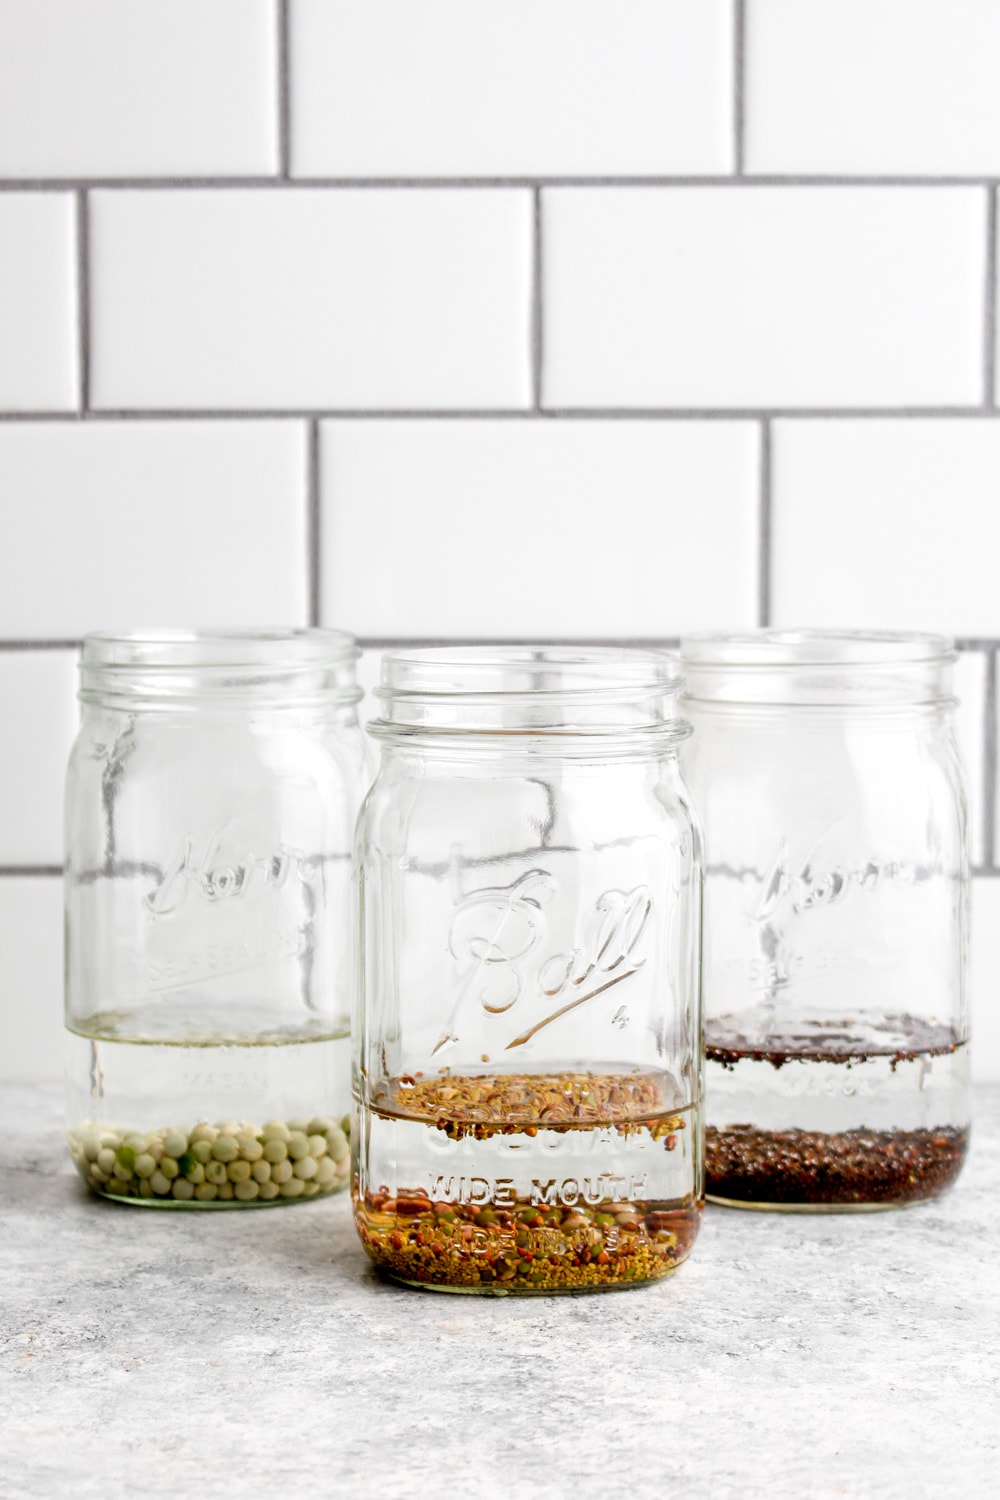 Sprout seeds soaking in water in mason jars.